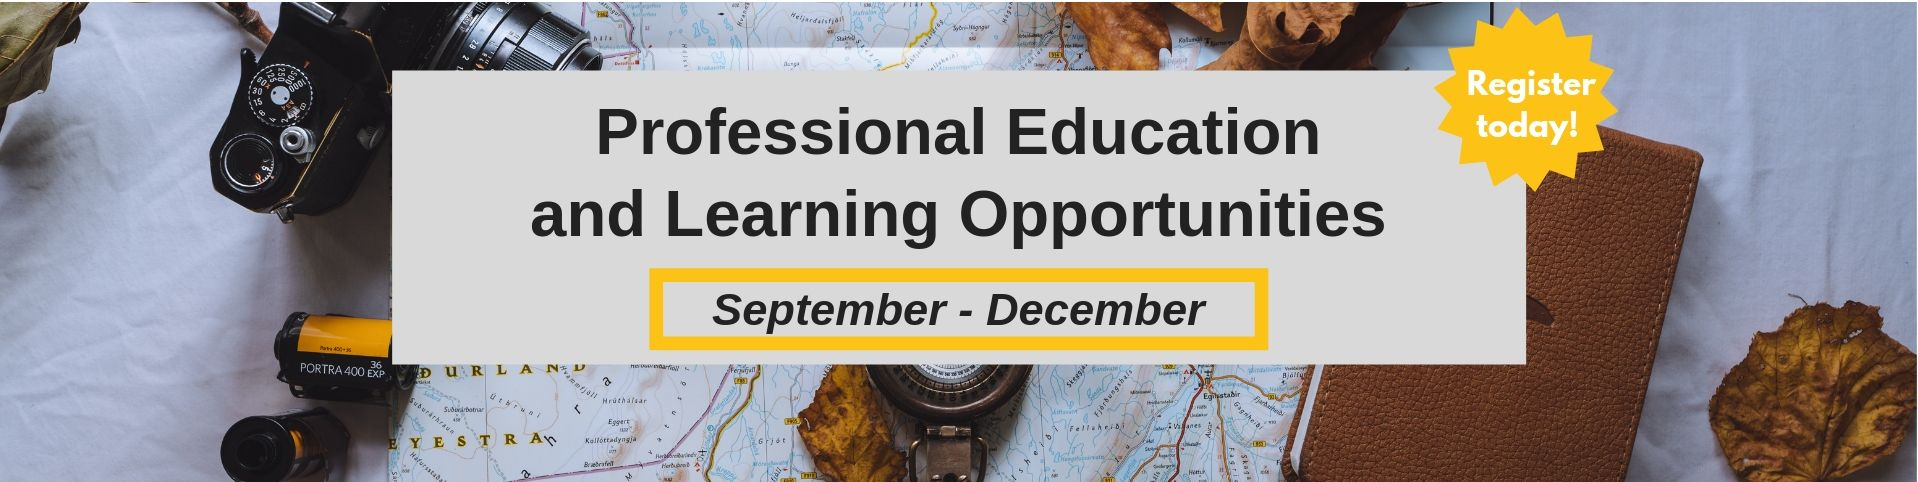 Professional Education Opportunities